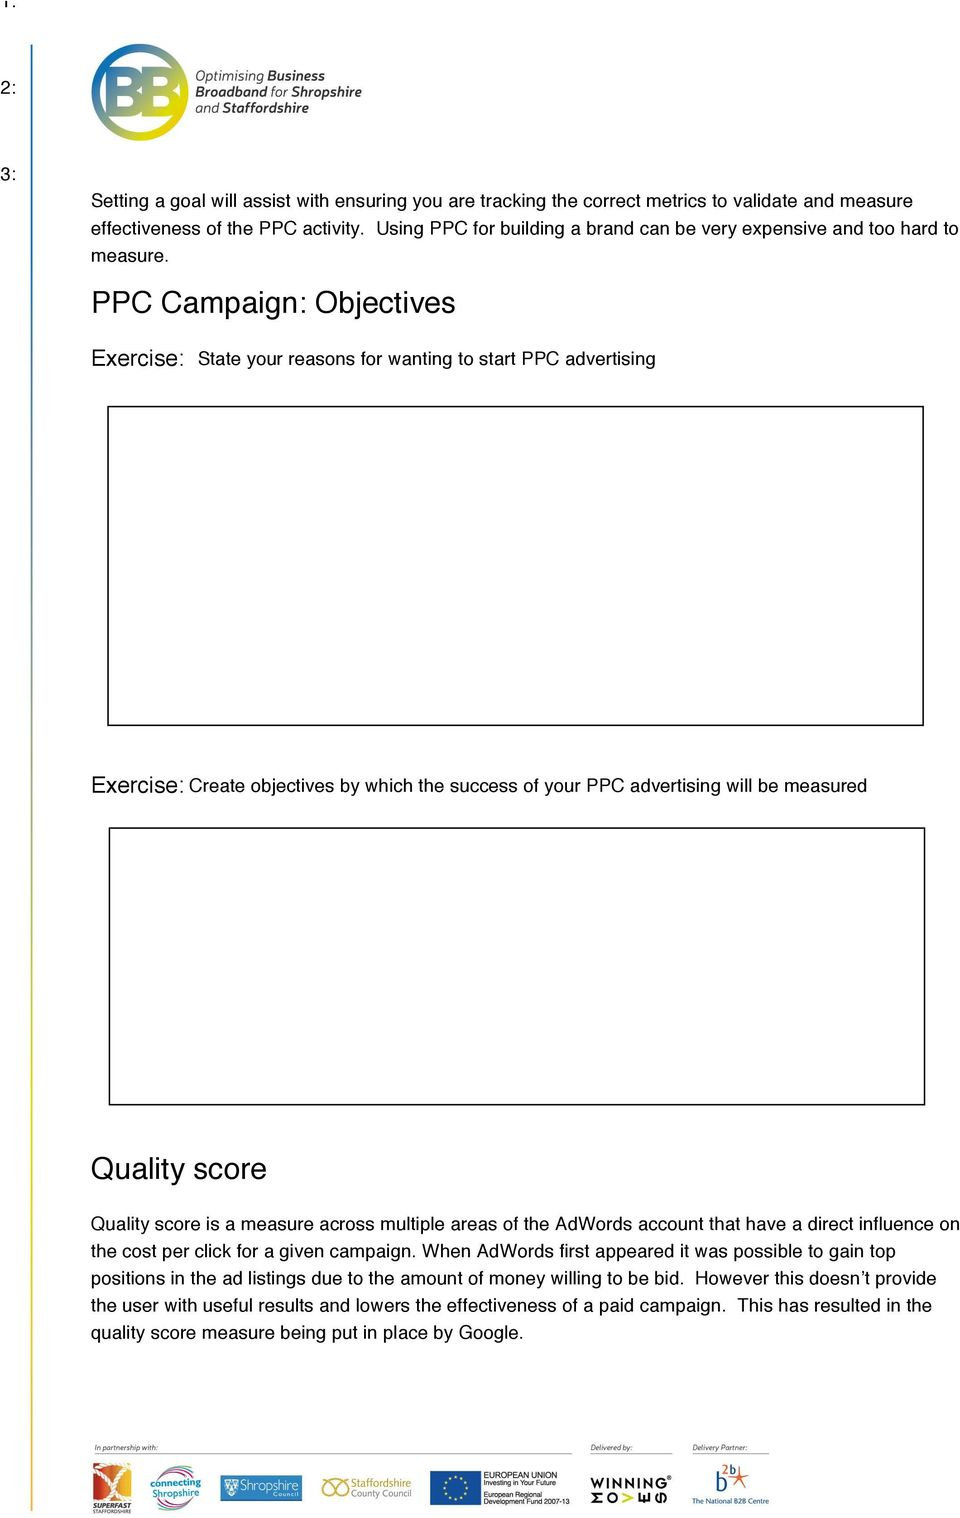 PPC Campaign: Objectives Exercise: State your reasons for wanting to start PPC advertising Exercise: Create objectives by which the success of your PPC advertising will be measured Quality score